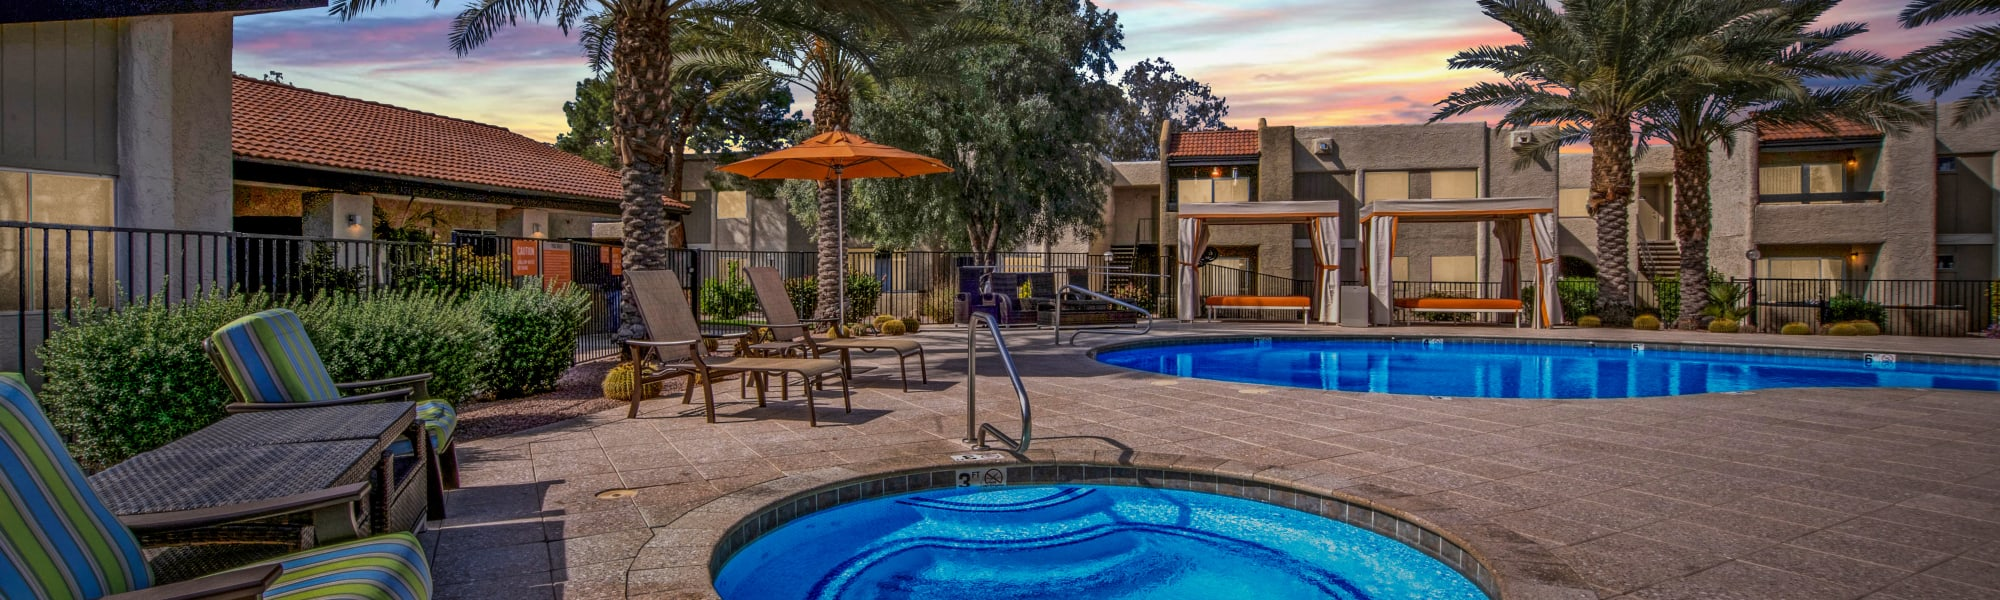 Photos of Avia McCormick Ranch Apartments in Scottsdale, Arizona